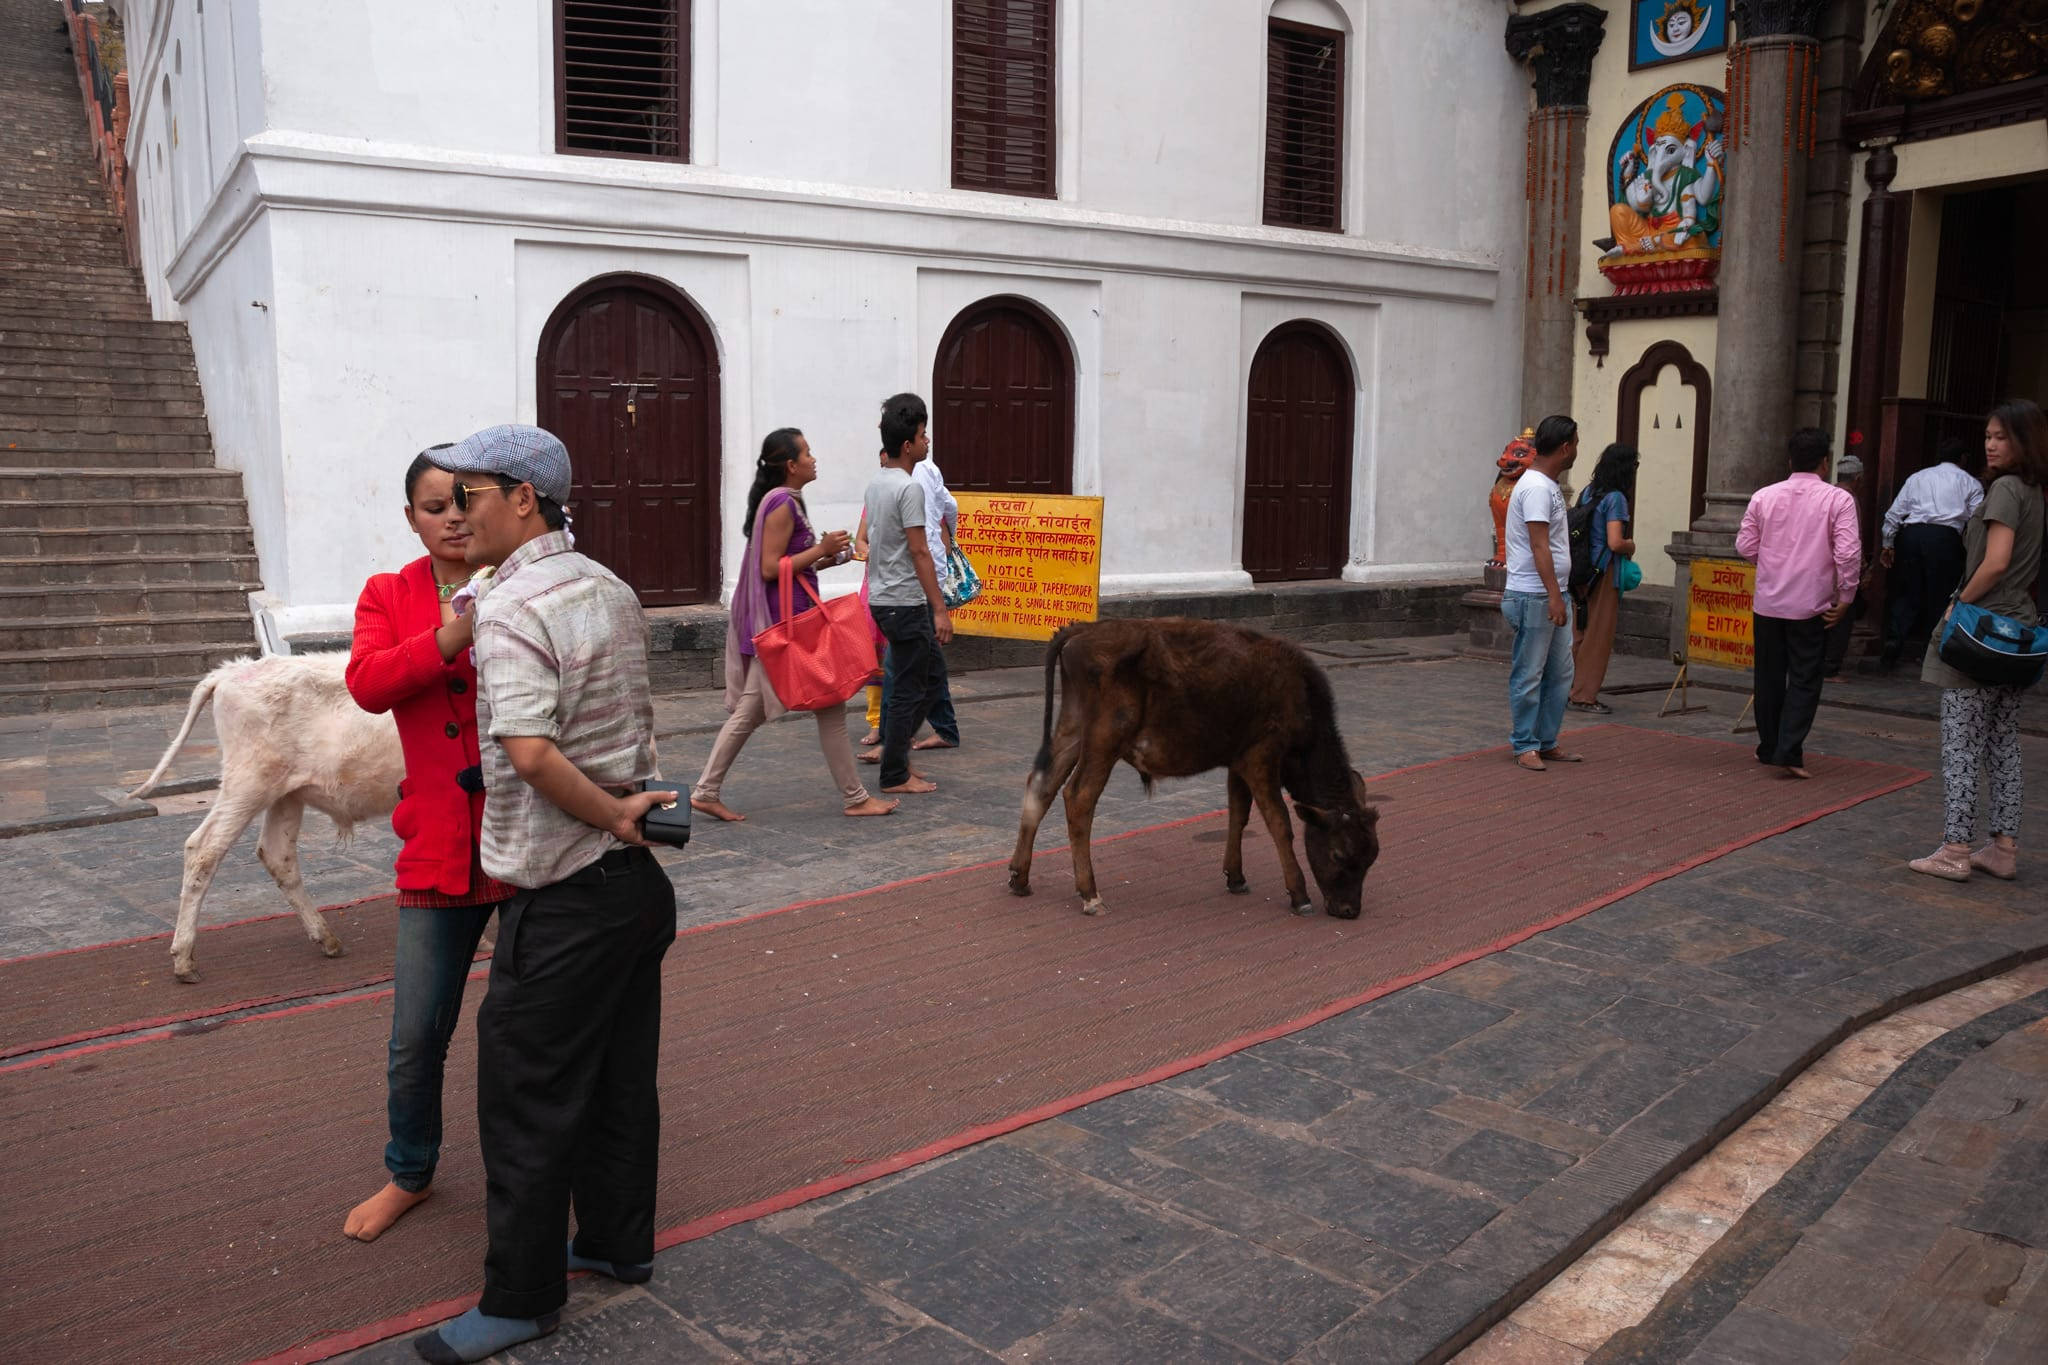 Nepali people surrounded by cows get ready to enter the Pashupatinath Temple in Kathmandu, Nepal.